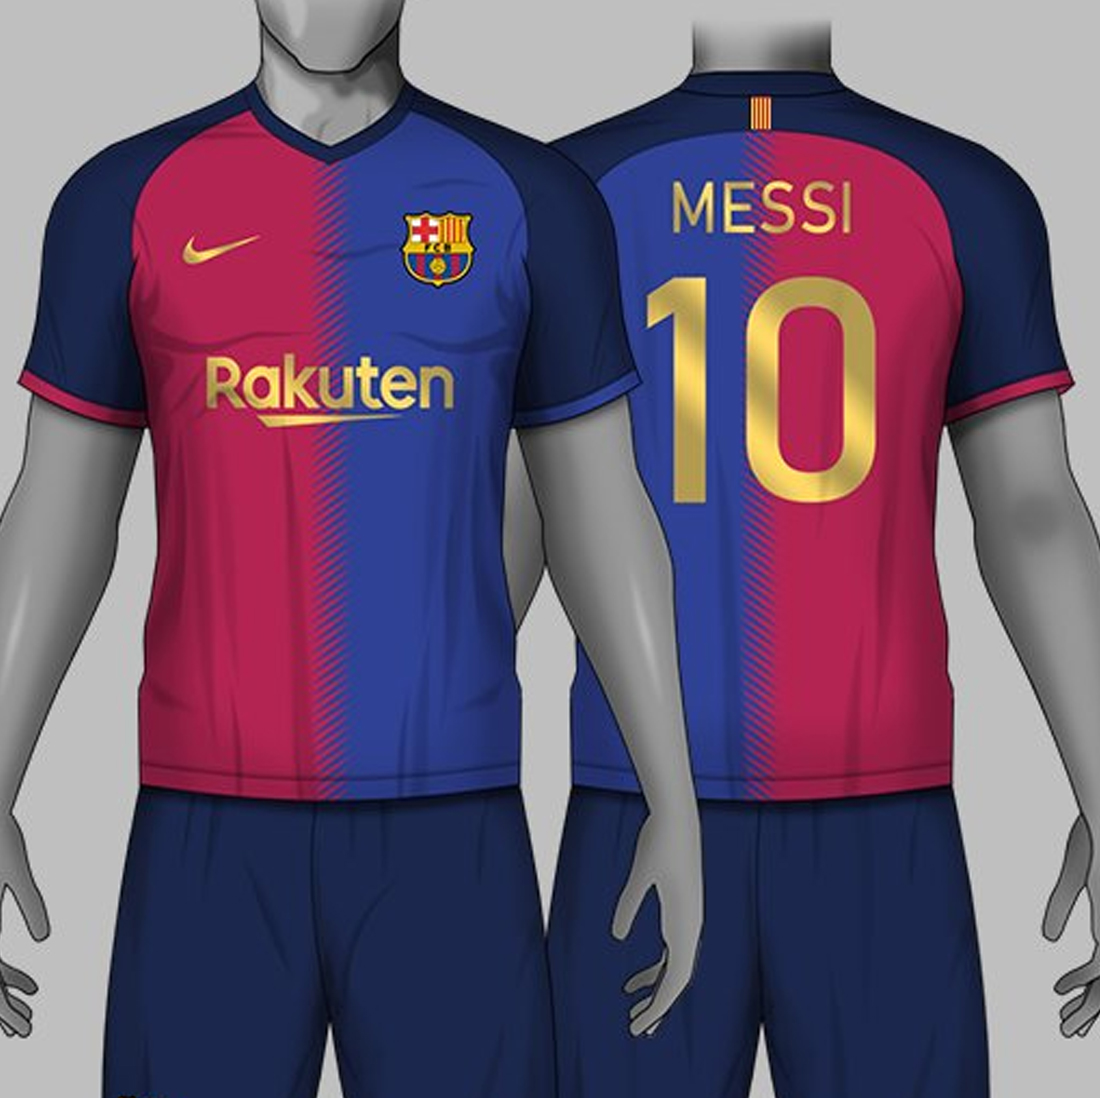 official photos 71ab4 a7660 3 Amazing Nike FC Barcelona Home Kit Concepts By Carrino ...